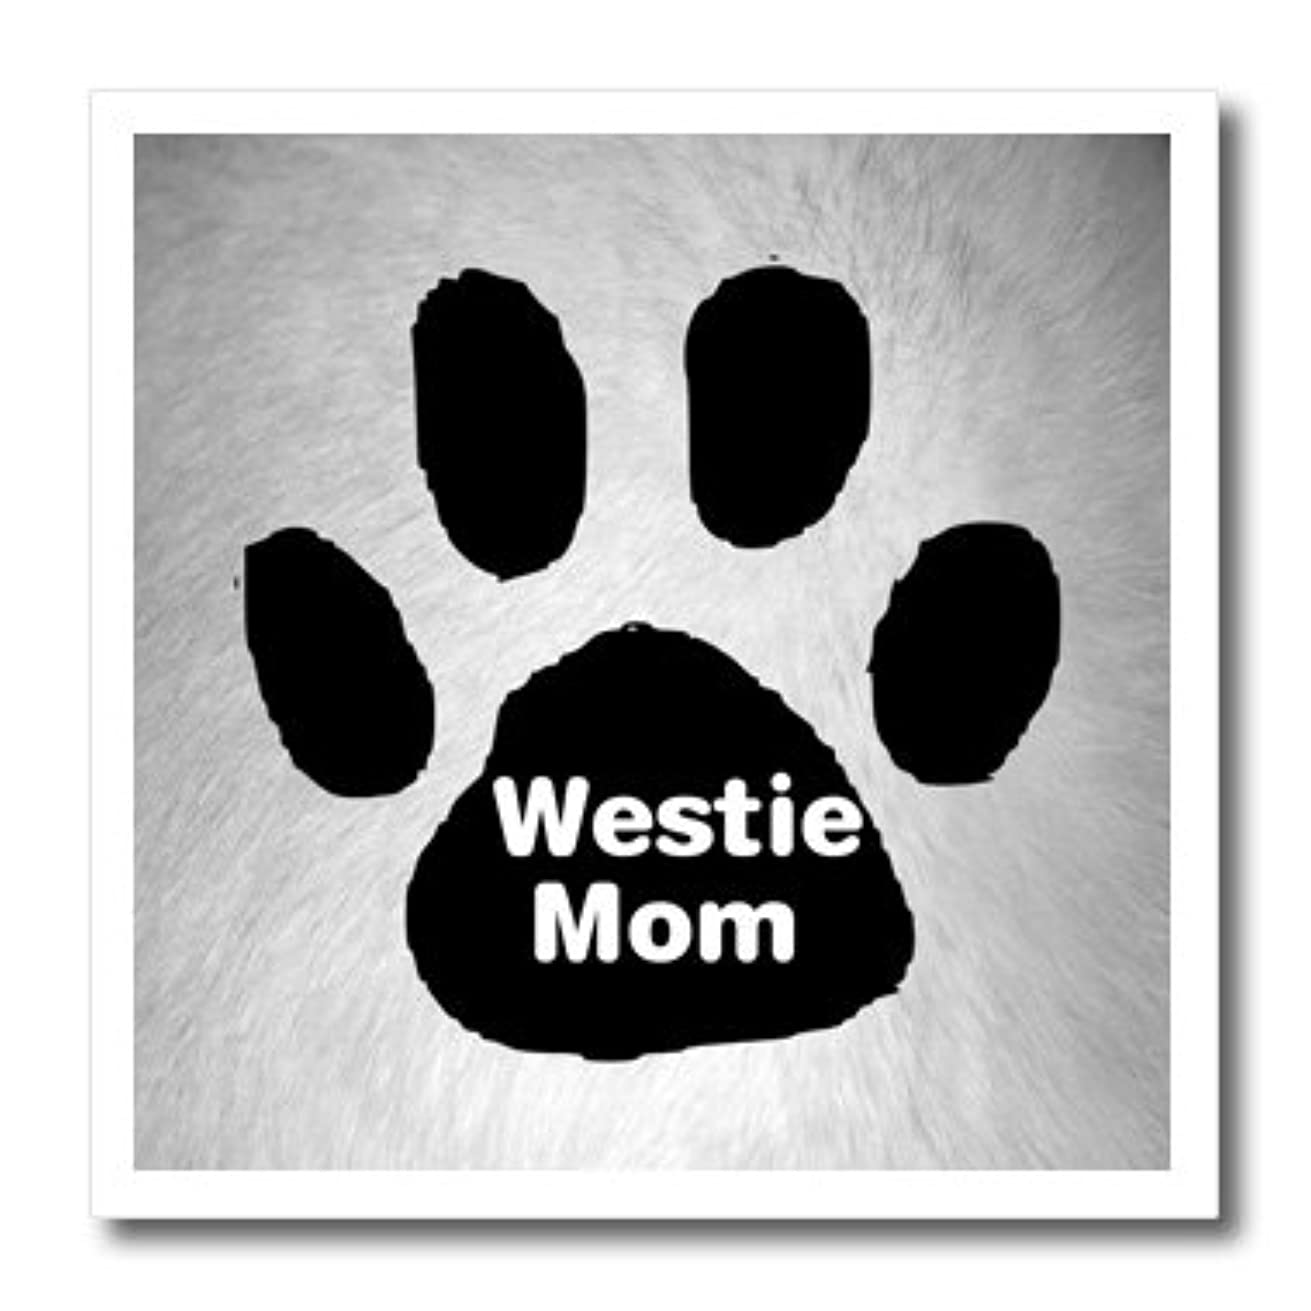 3dRose ht_161300_2 White Dog Hair with Paw and Westie Mom Iron on Heat Transfer Paper for White Material, 6 by 6-Inch